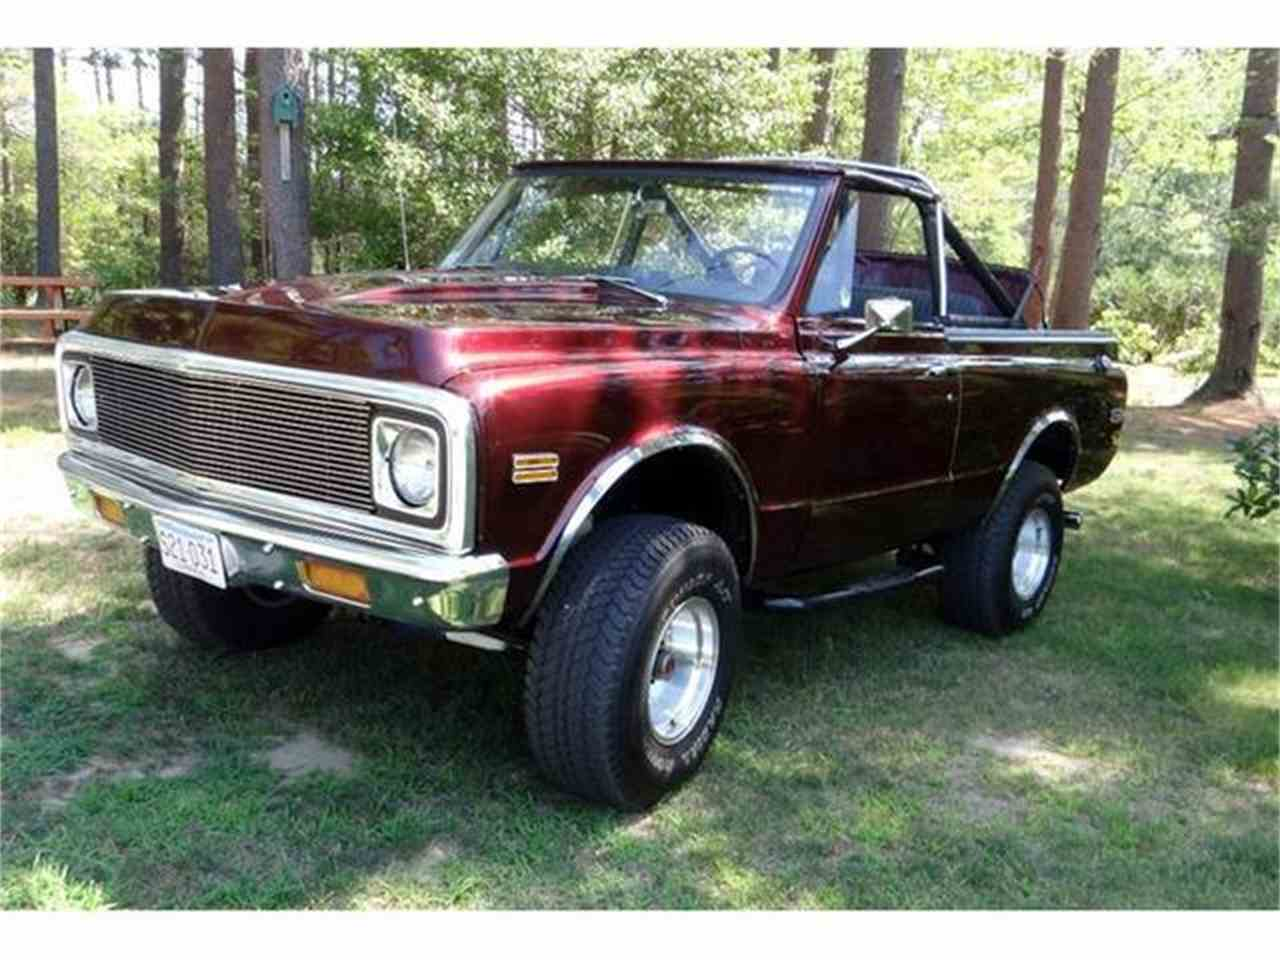 1971 Chevrolet Blazer for Sale on ClassicCars.com - 7 Available